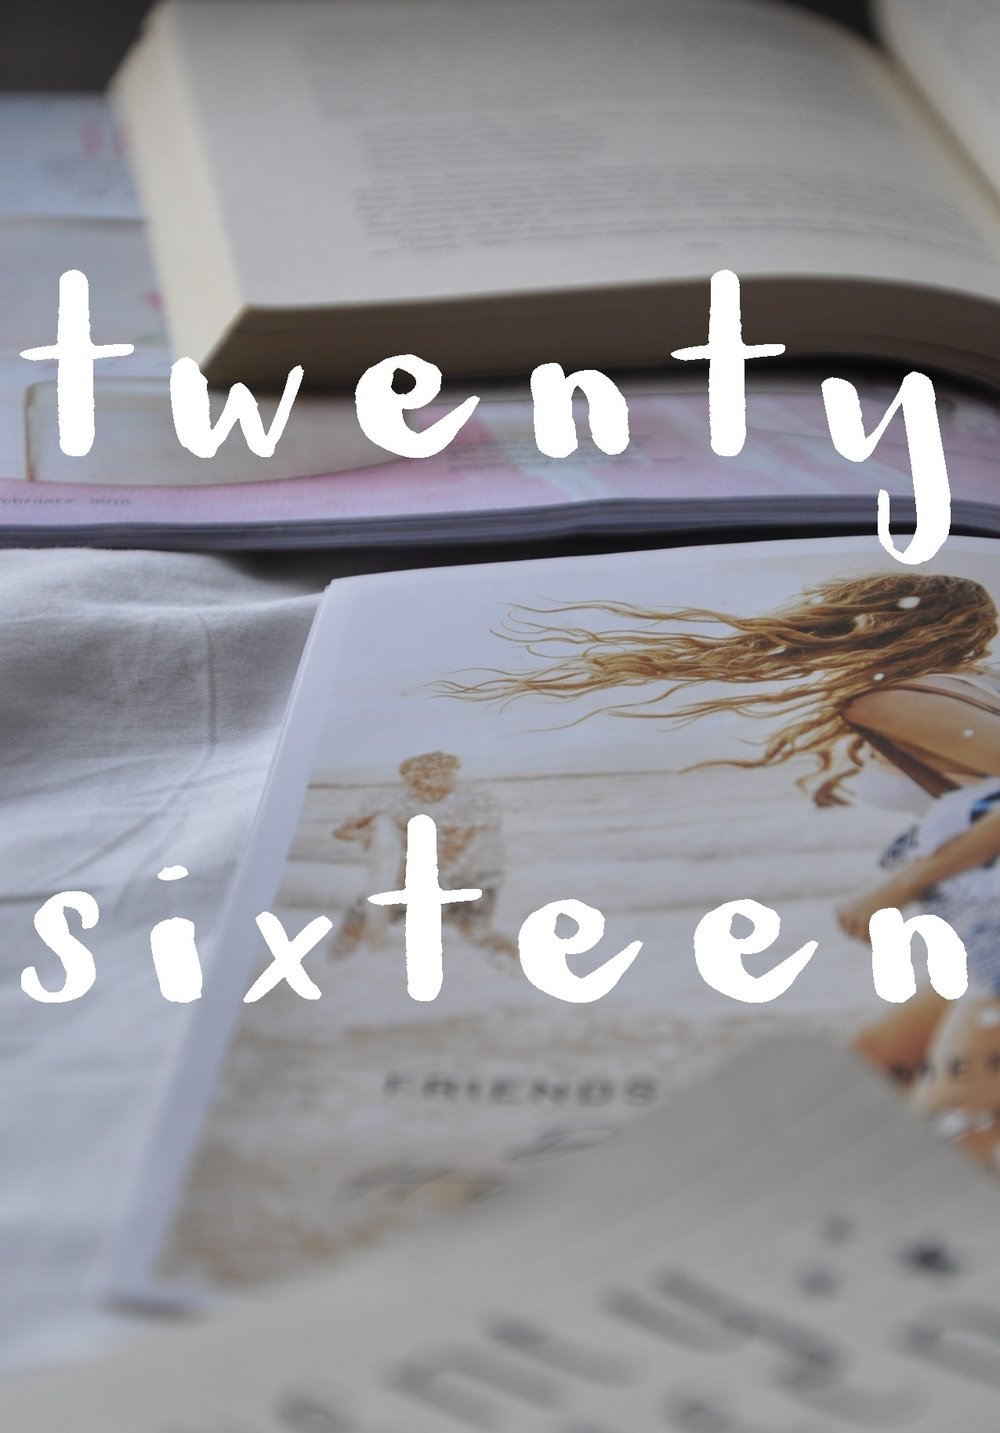 Twenty Sixteen Resolutions – Happy New Year & Welcome 2016! My dreams, ambitions and goals for the New Year. A fresh start, new beginning and chapter. Read, write, inspire, photography. A Lovely Space | alovelyspace.com